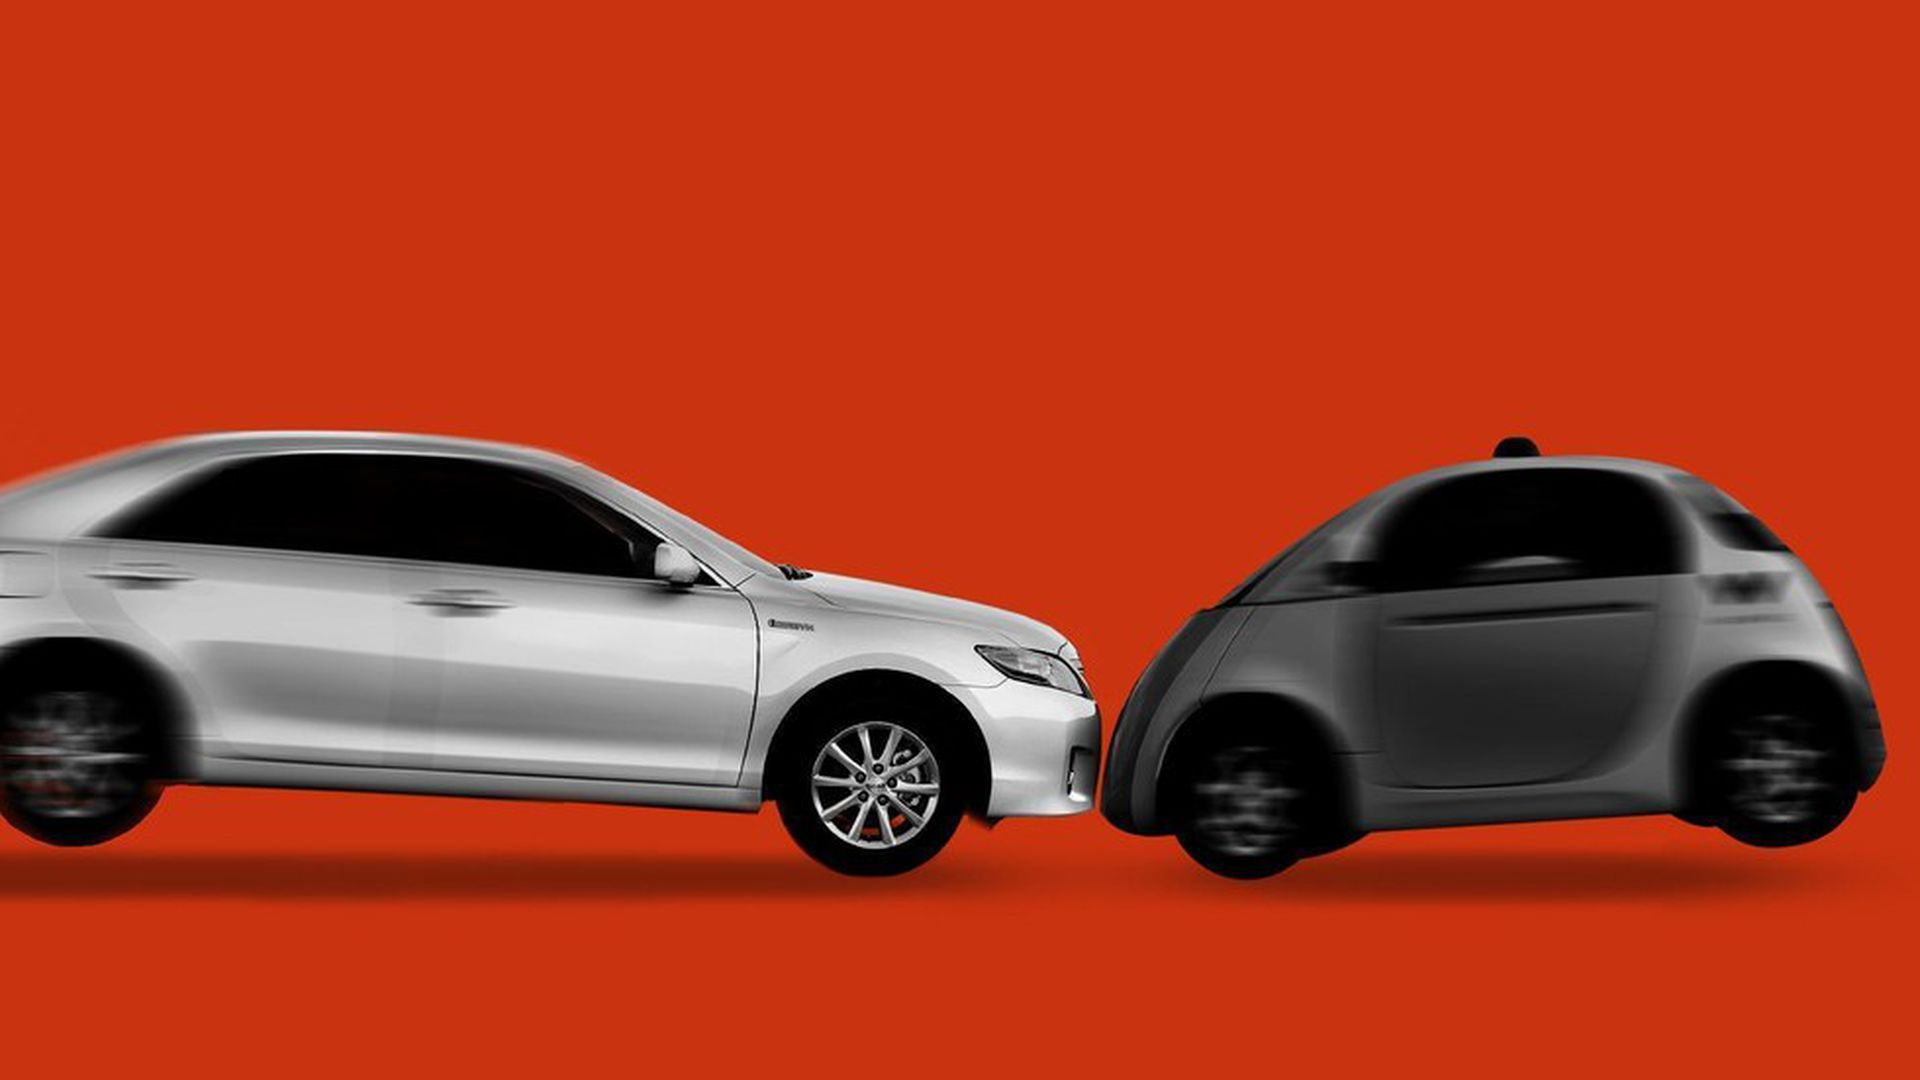 An illustration of a Waymo car colliding with an Uber